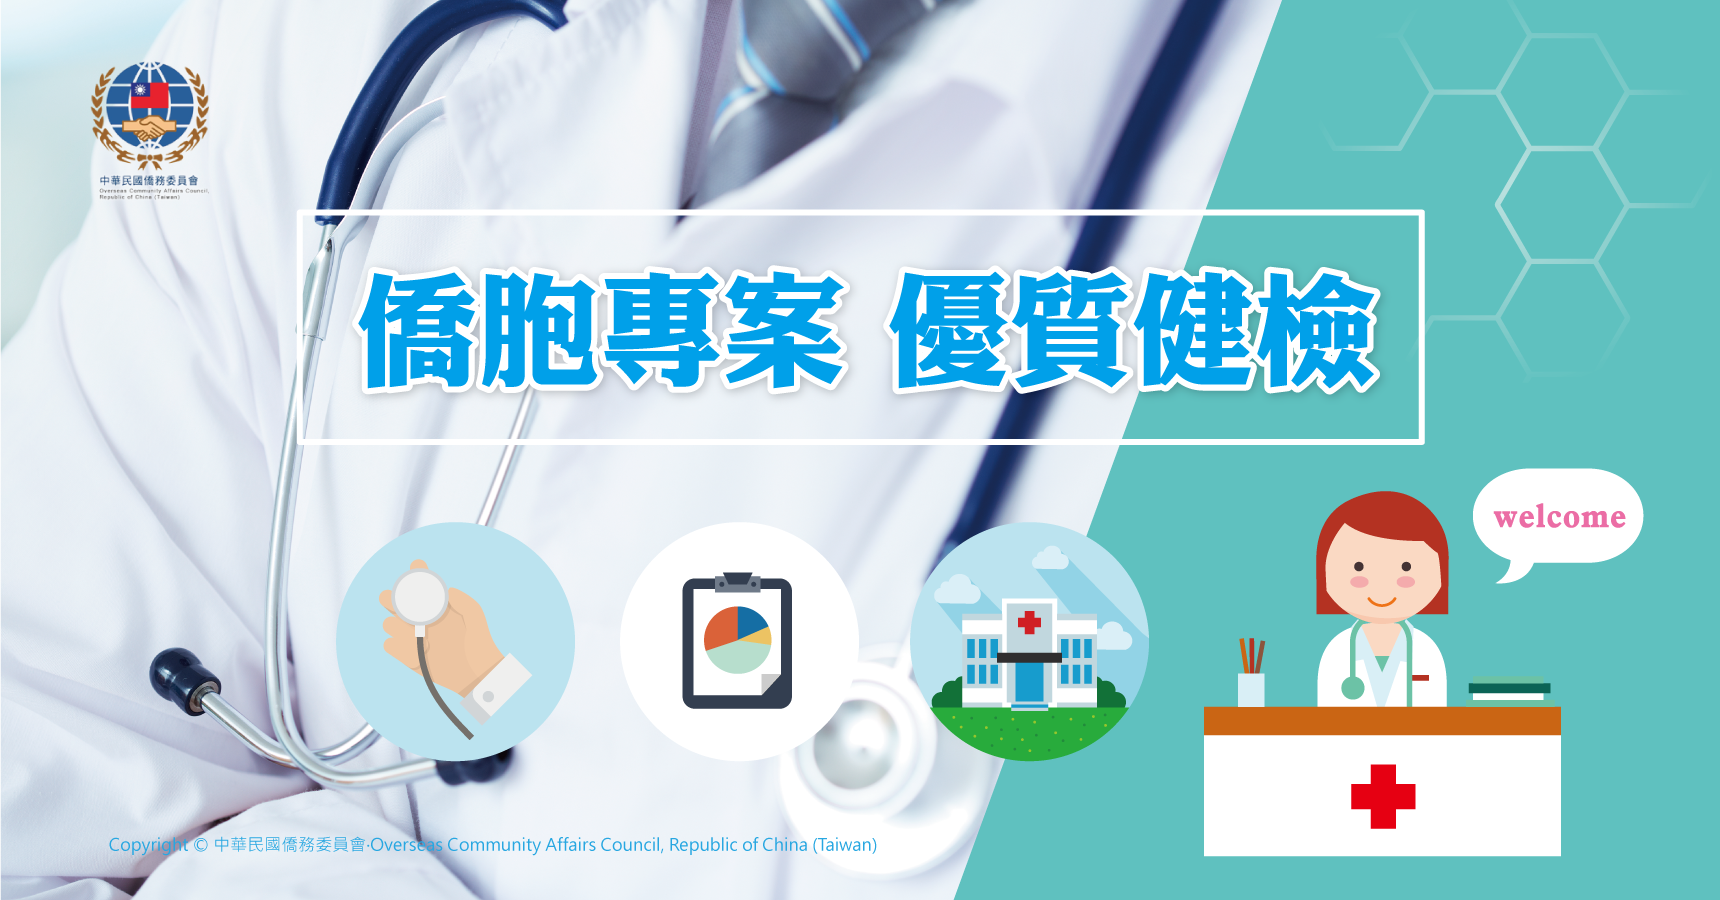 Health examination packages for Overseas Compatriot